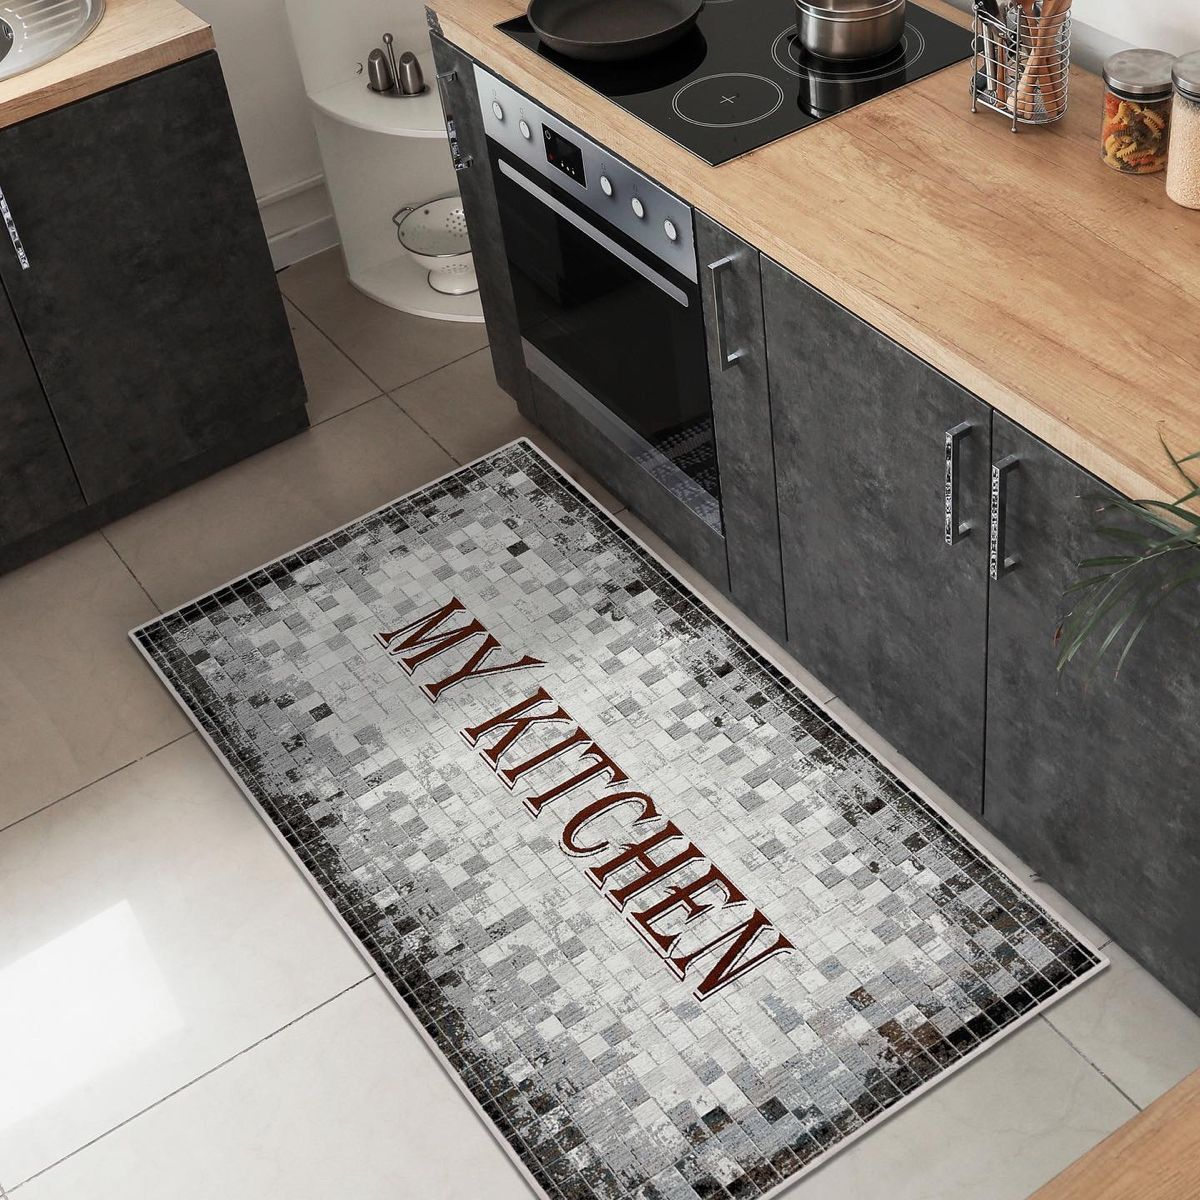 My Kitchen Rugs Non Slip Backing Special Gobelin Weaving In 2021 Kitchen Runner Rug Runner Kitchen Rugs Brown kitchen rugs washable